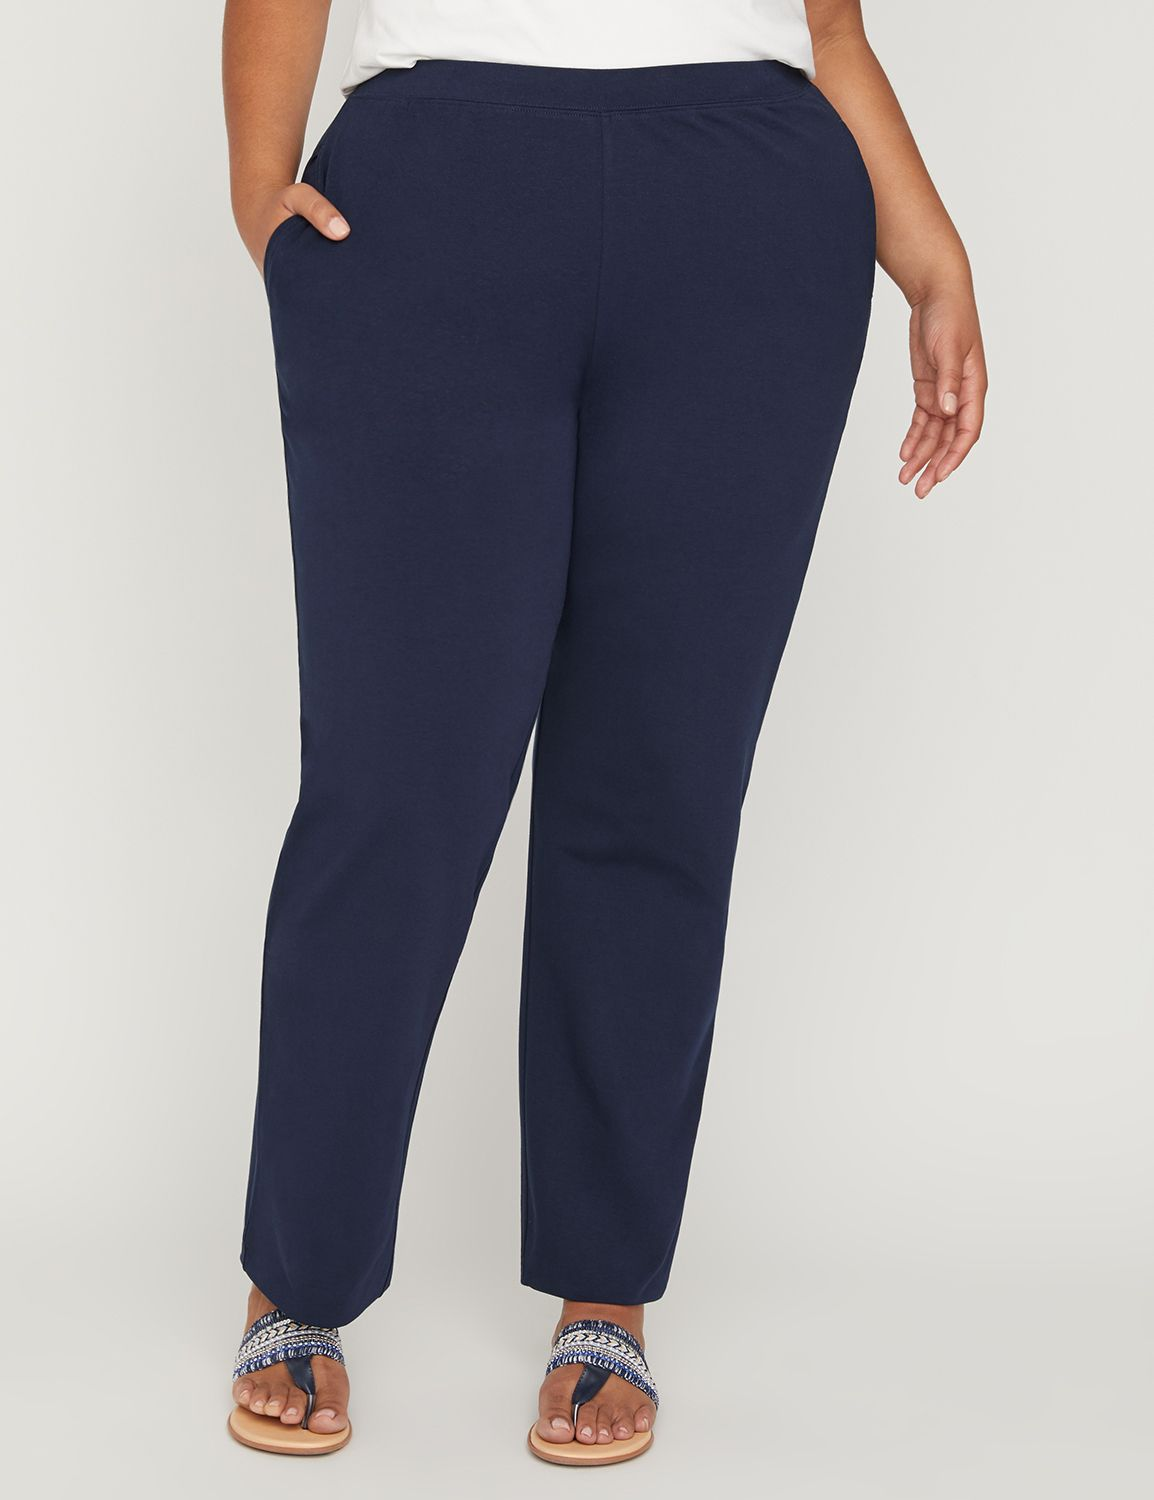 Suprema Knit Pant (Classic Colors) Suprema Knit Pant (Classic Colors) MP-300009681